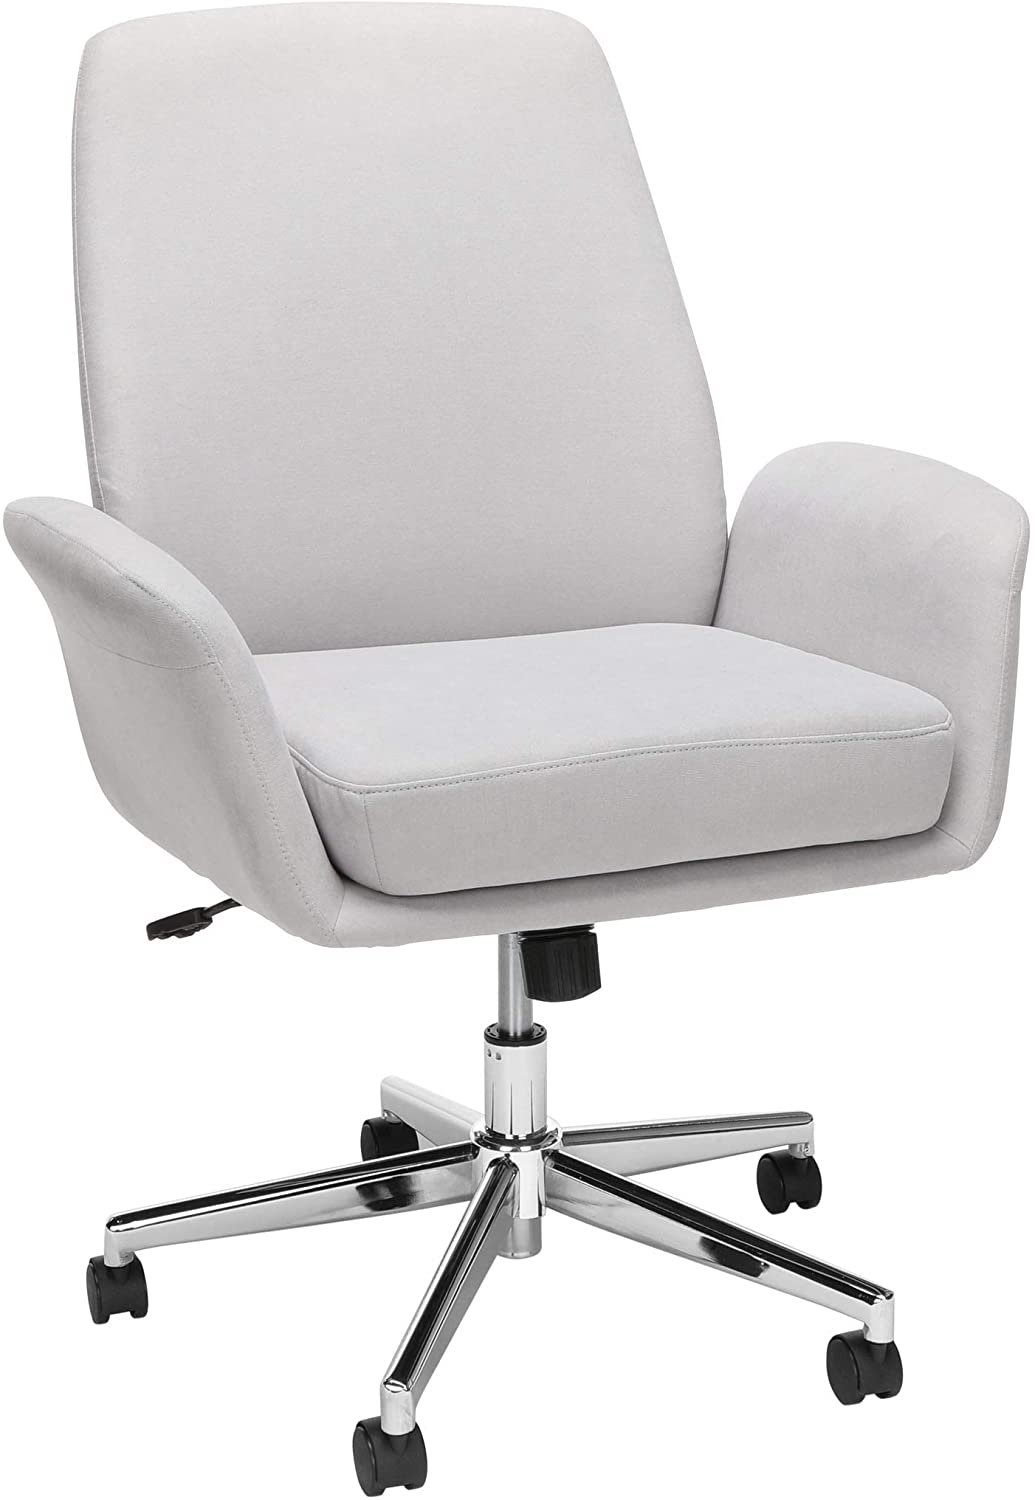 OFM Core Collection Modern Fabric Upholstered Office Chair, Cushioned Arm, Gray